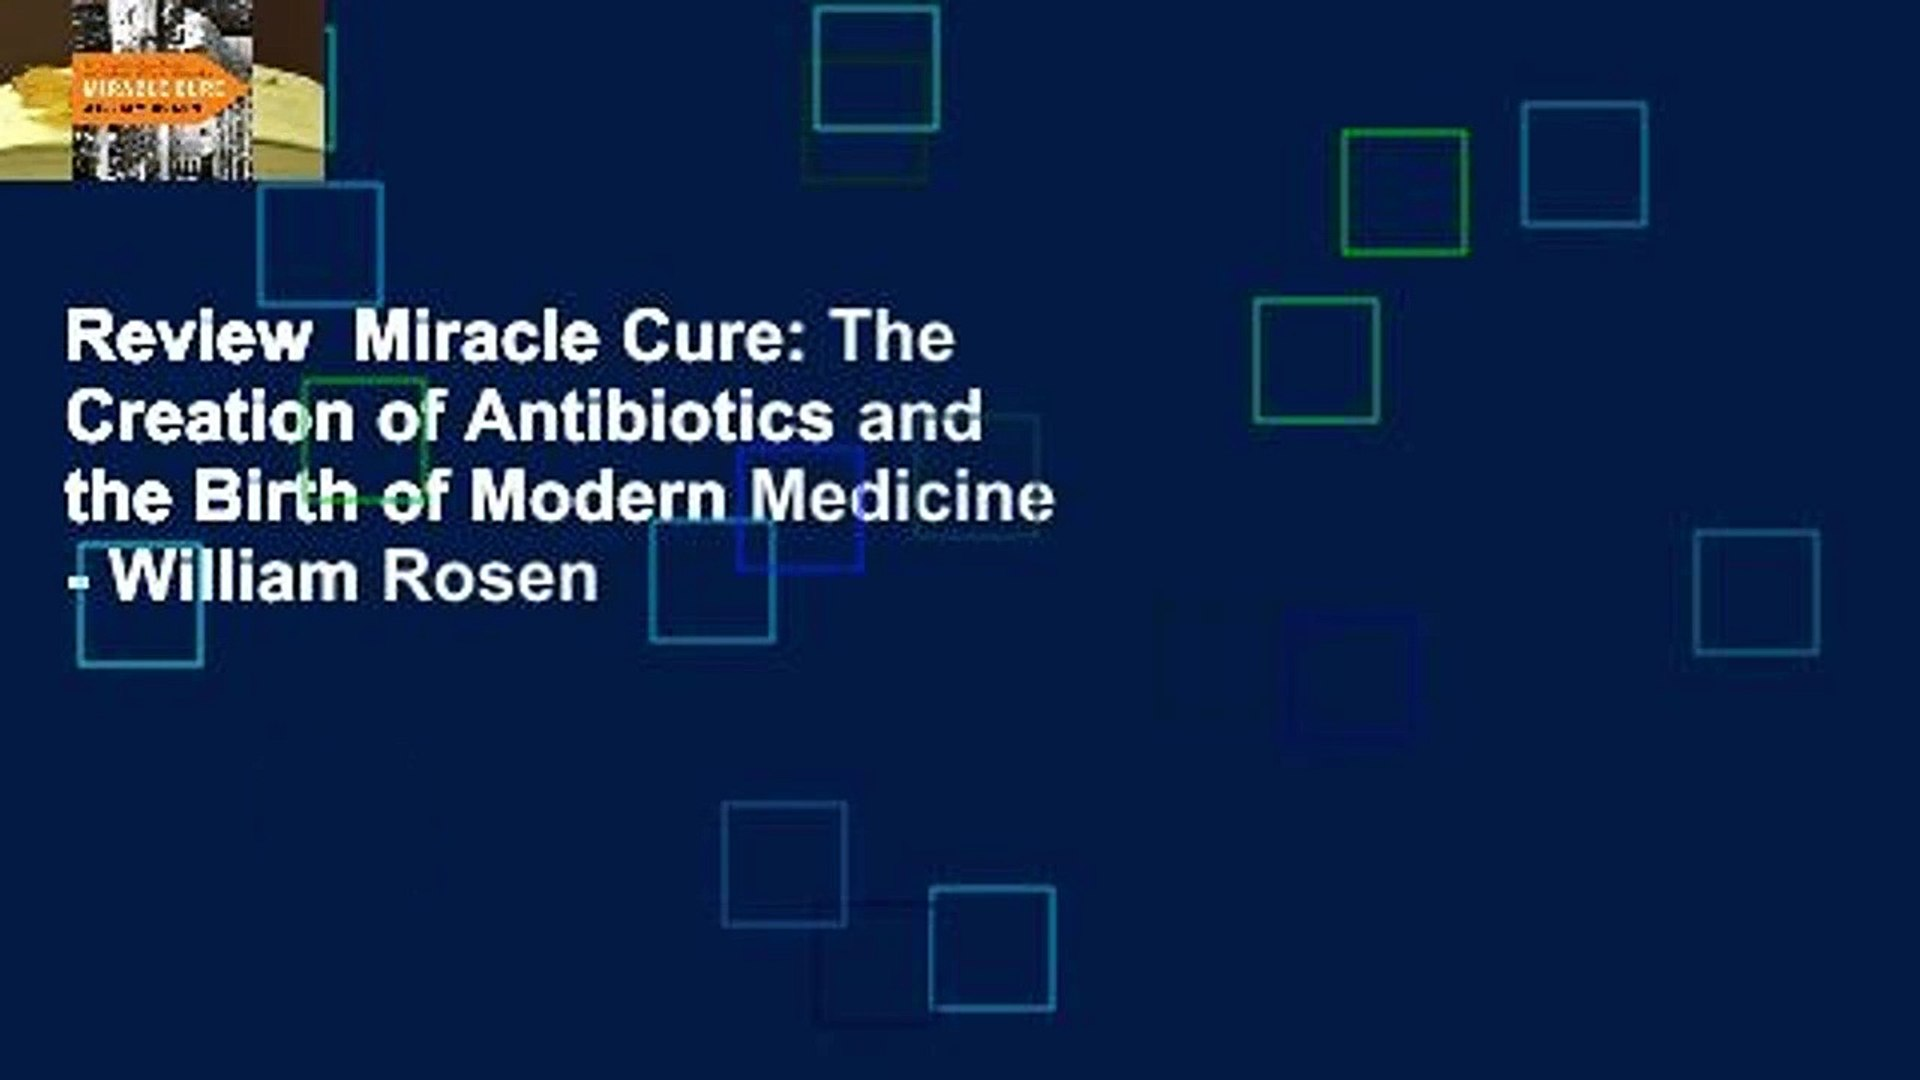 Review Miracle Cure: The Creation of Antibiotics and the Birth of Modern  Medicine - William Rosen